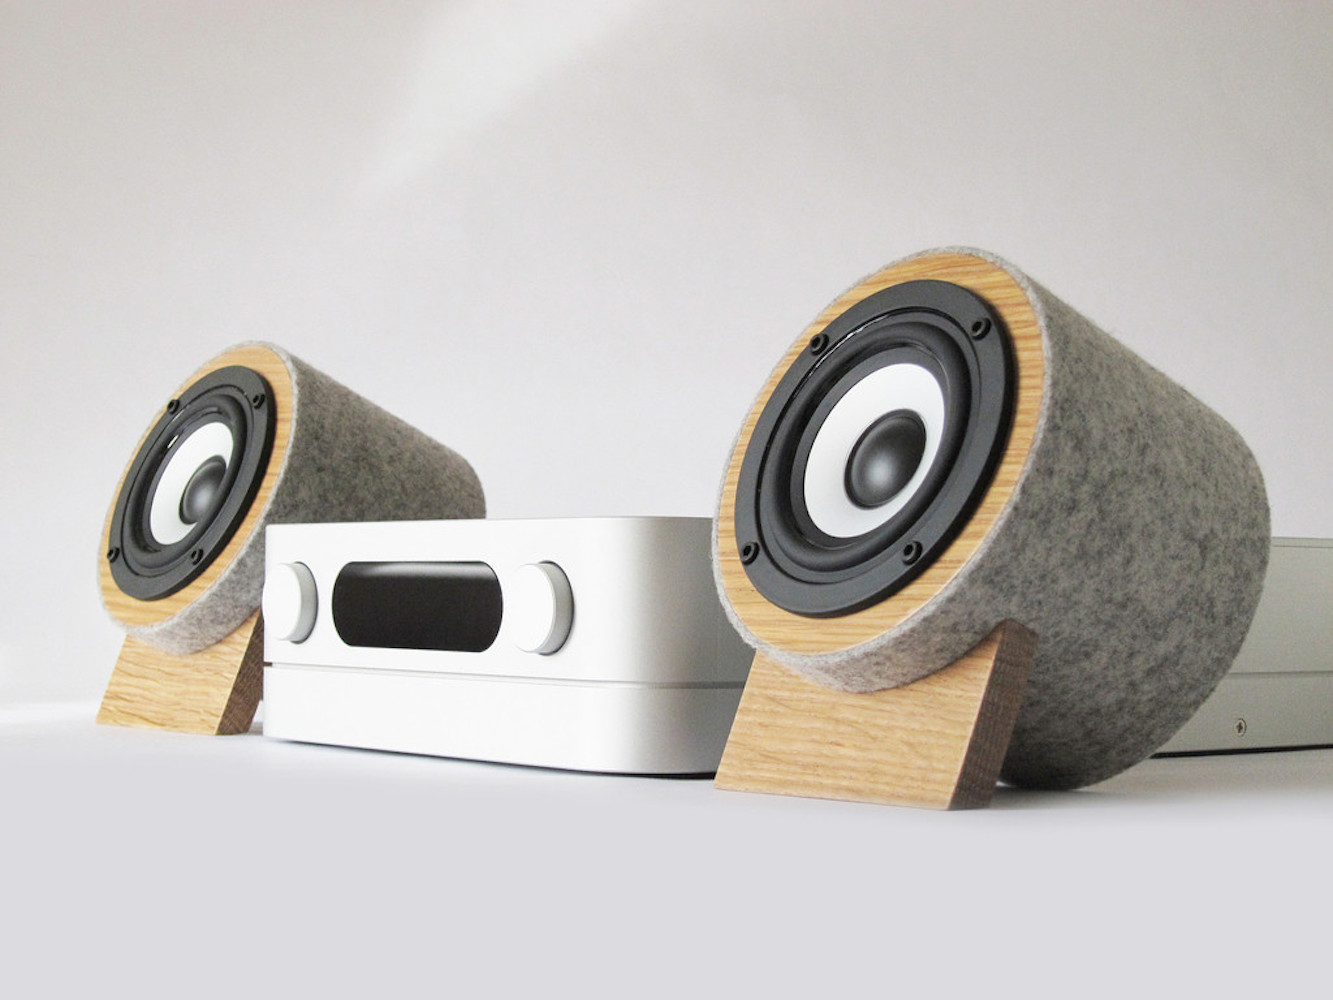 Yorkie+EXR+Desktop+Speakers+By+Well+Rounded+Sound